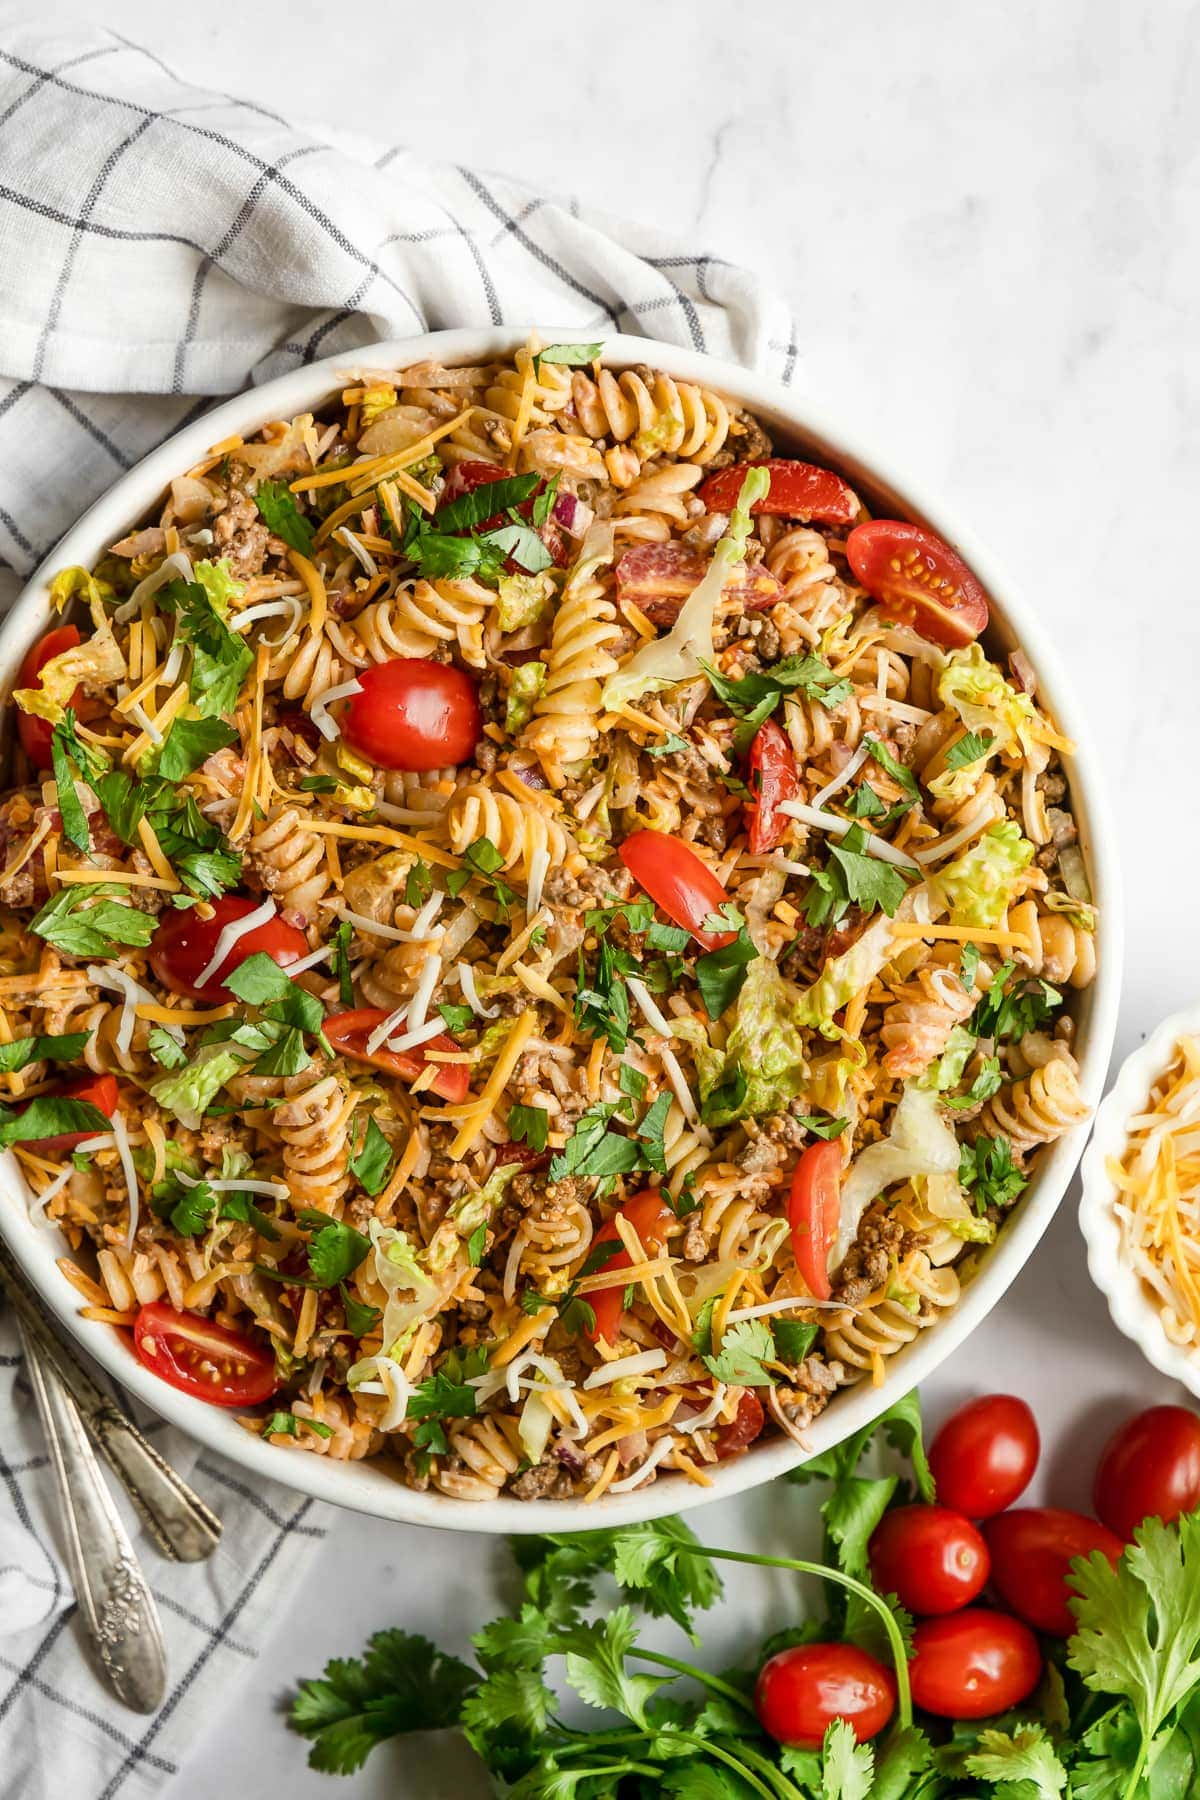 Taco pasta salad in a bowl topped with cilantro.